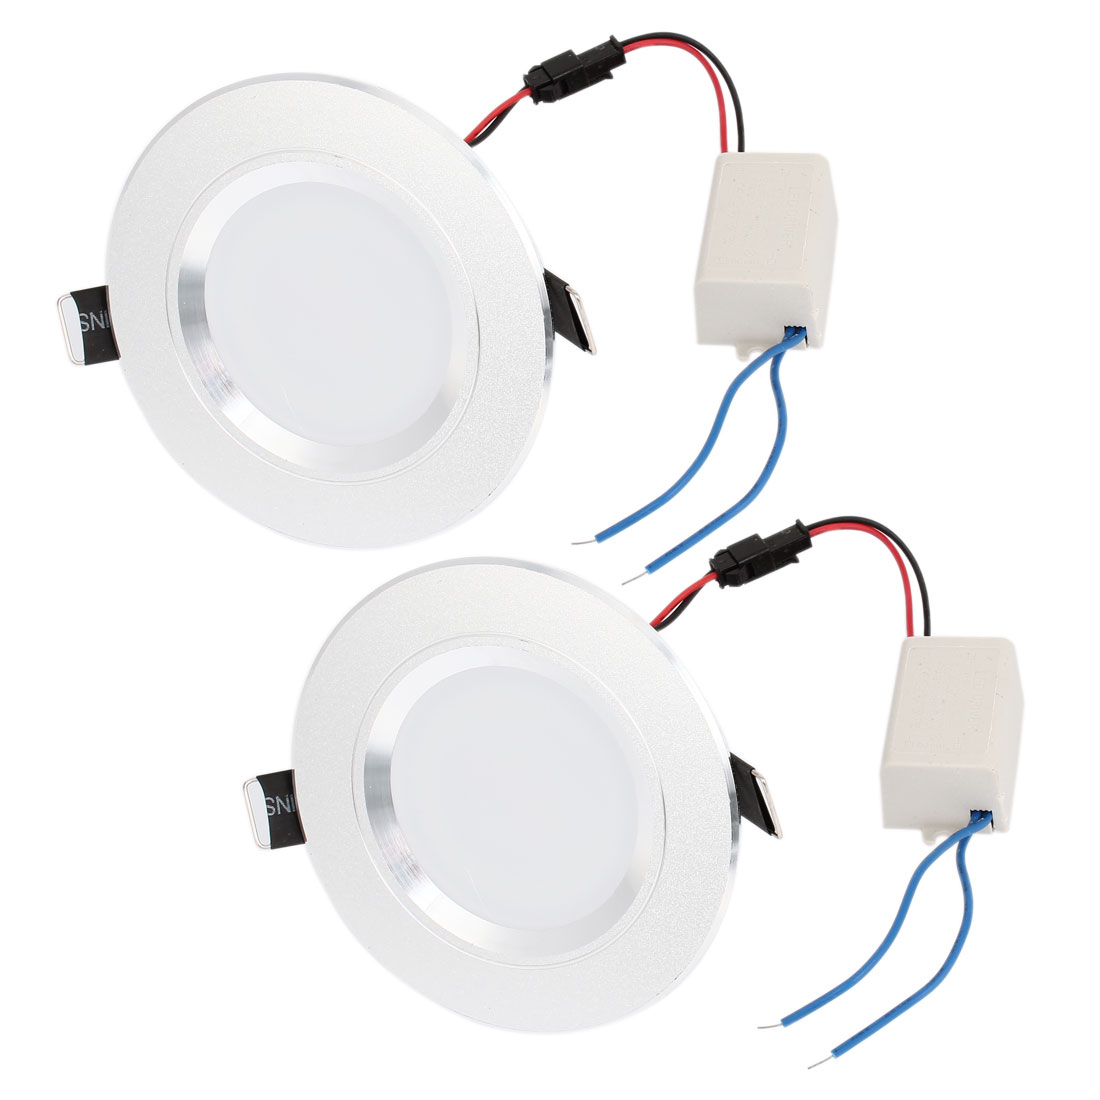 3W 6 LEDs Recessed Ceiling Downlight Pure White Energy Saving Spot Lamp 2 Pieces